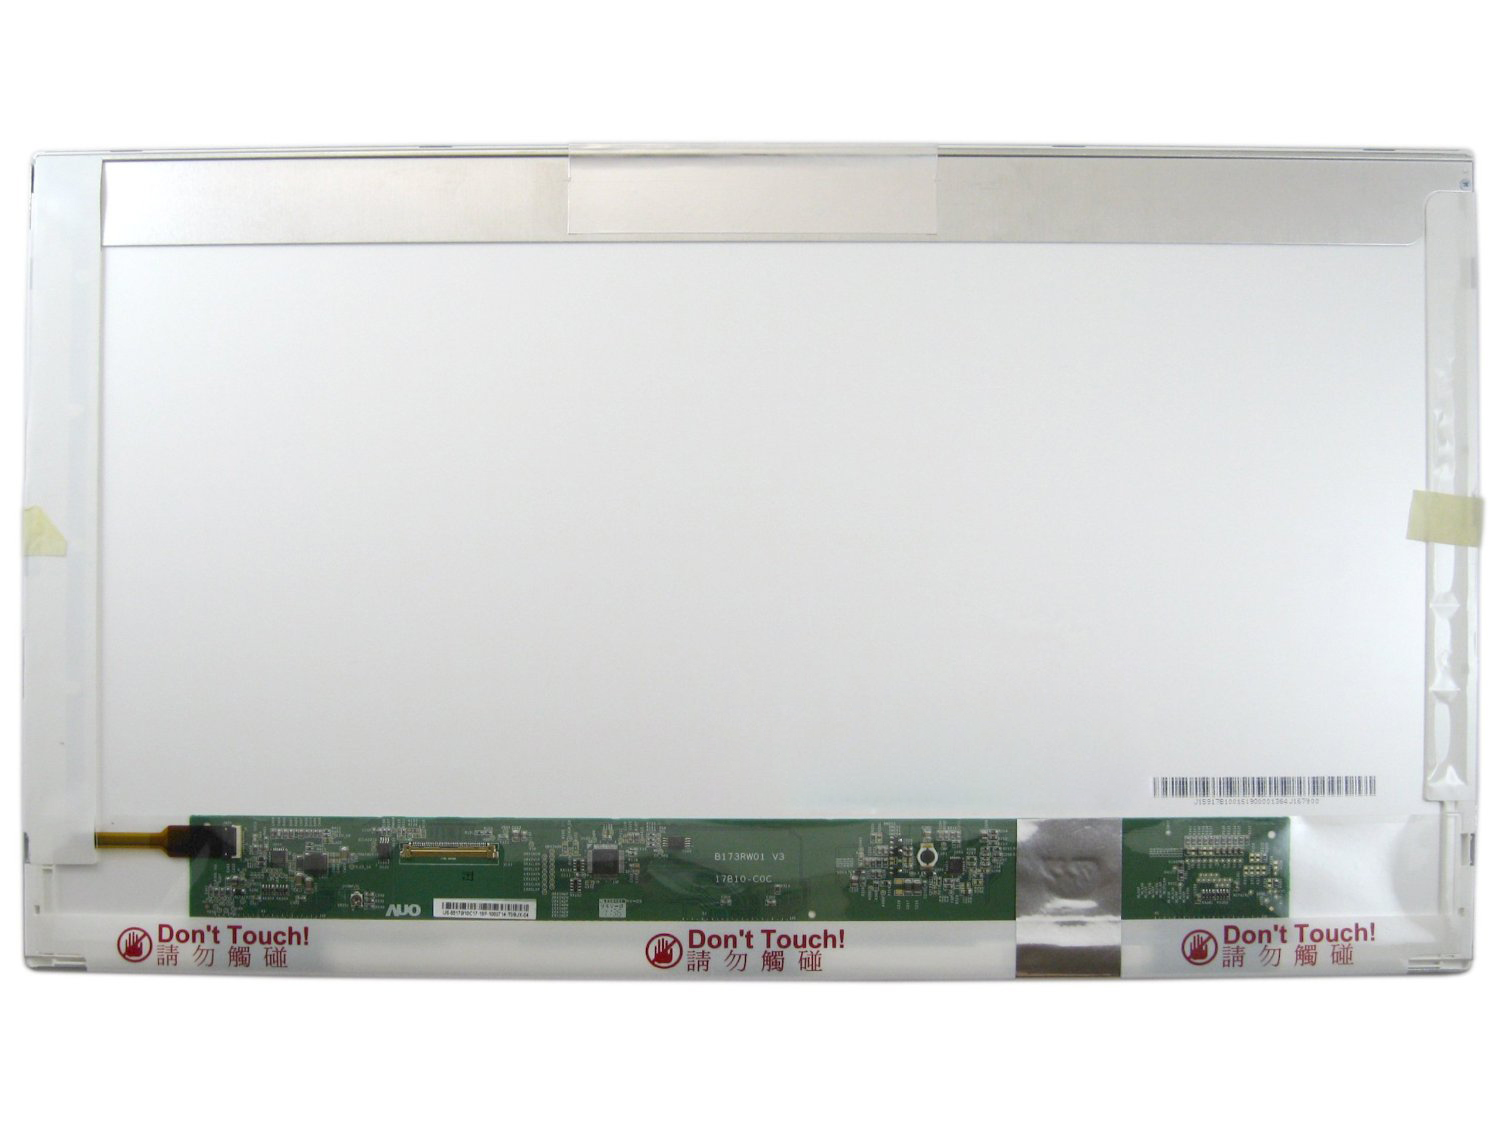 QuYing Laptop LCD Screen for Acer ASPIRE V3-772 V3-772G E5-721 E5-731 E5-771 E5-771G ES1-771 SERIES (17.3 inch 1600x900 30pin) quying laptop lcd screen for acer aspire 7745z 7741 7741g 7741zg 7741z series 17 3 inch 1600x900 40pin